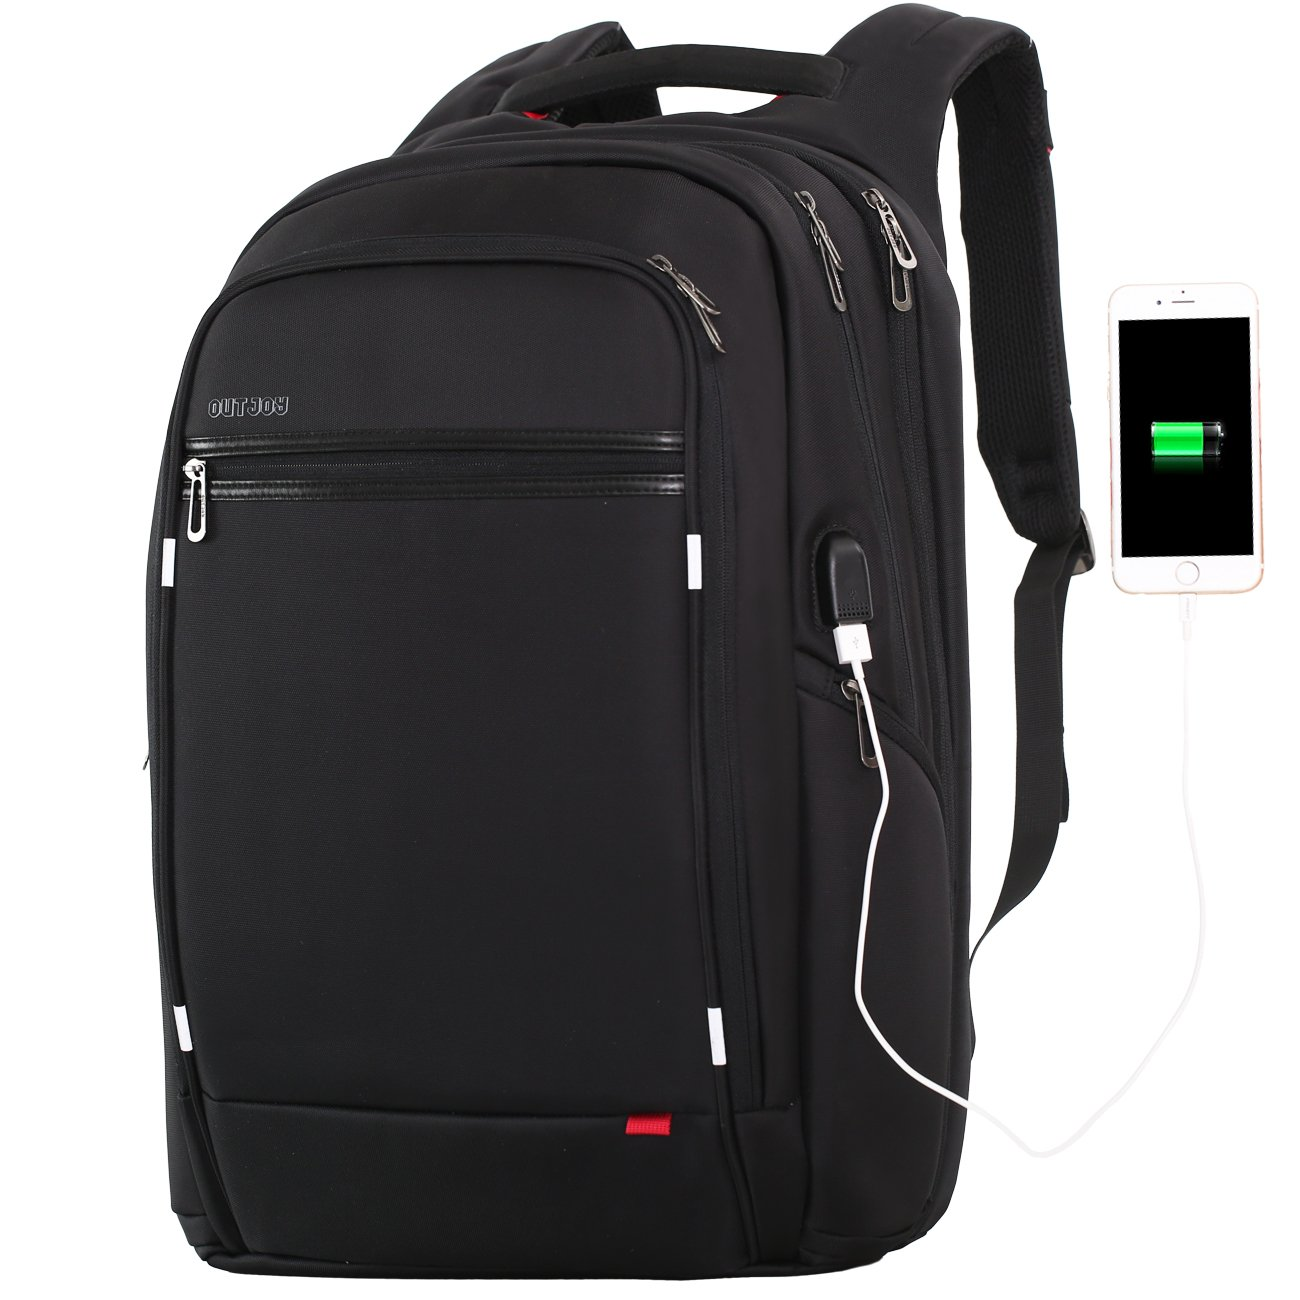 18 inch large Laptop Backpack for Men,Water Resistant Polyester Backpack with USB Charging Port,Large Bookbag College Backpack Travel bag Black Business Backpack fit 15.6 17.3 laptops by Outjoy by OUTJOY (Image #1)